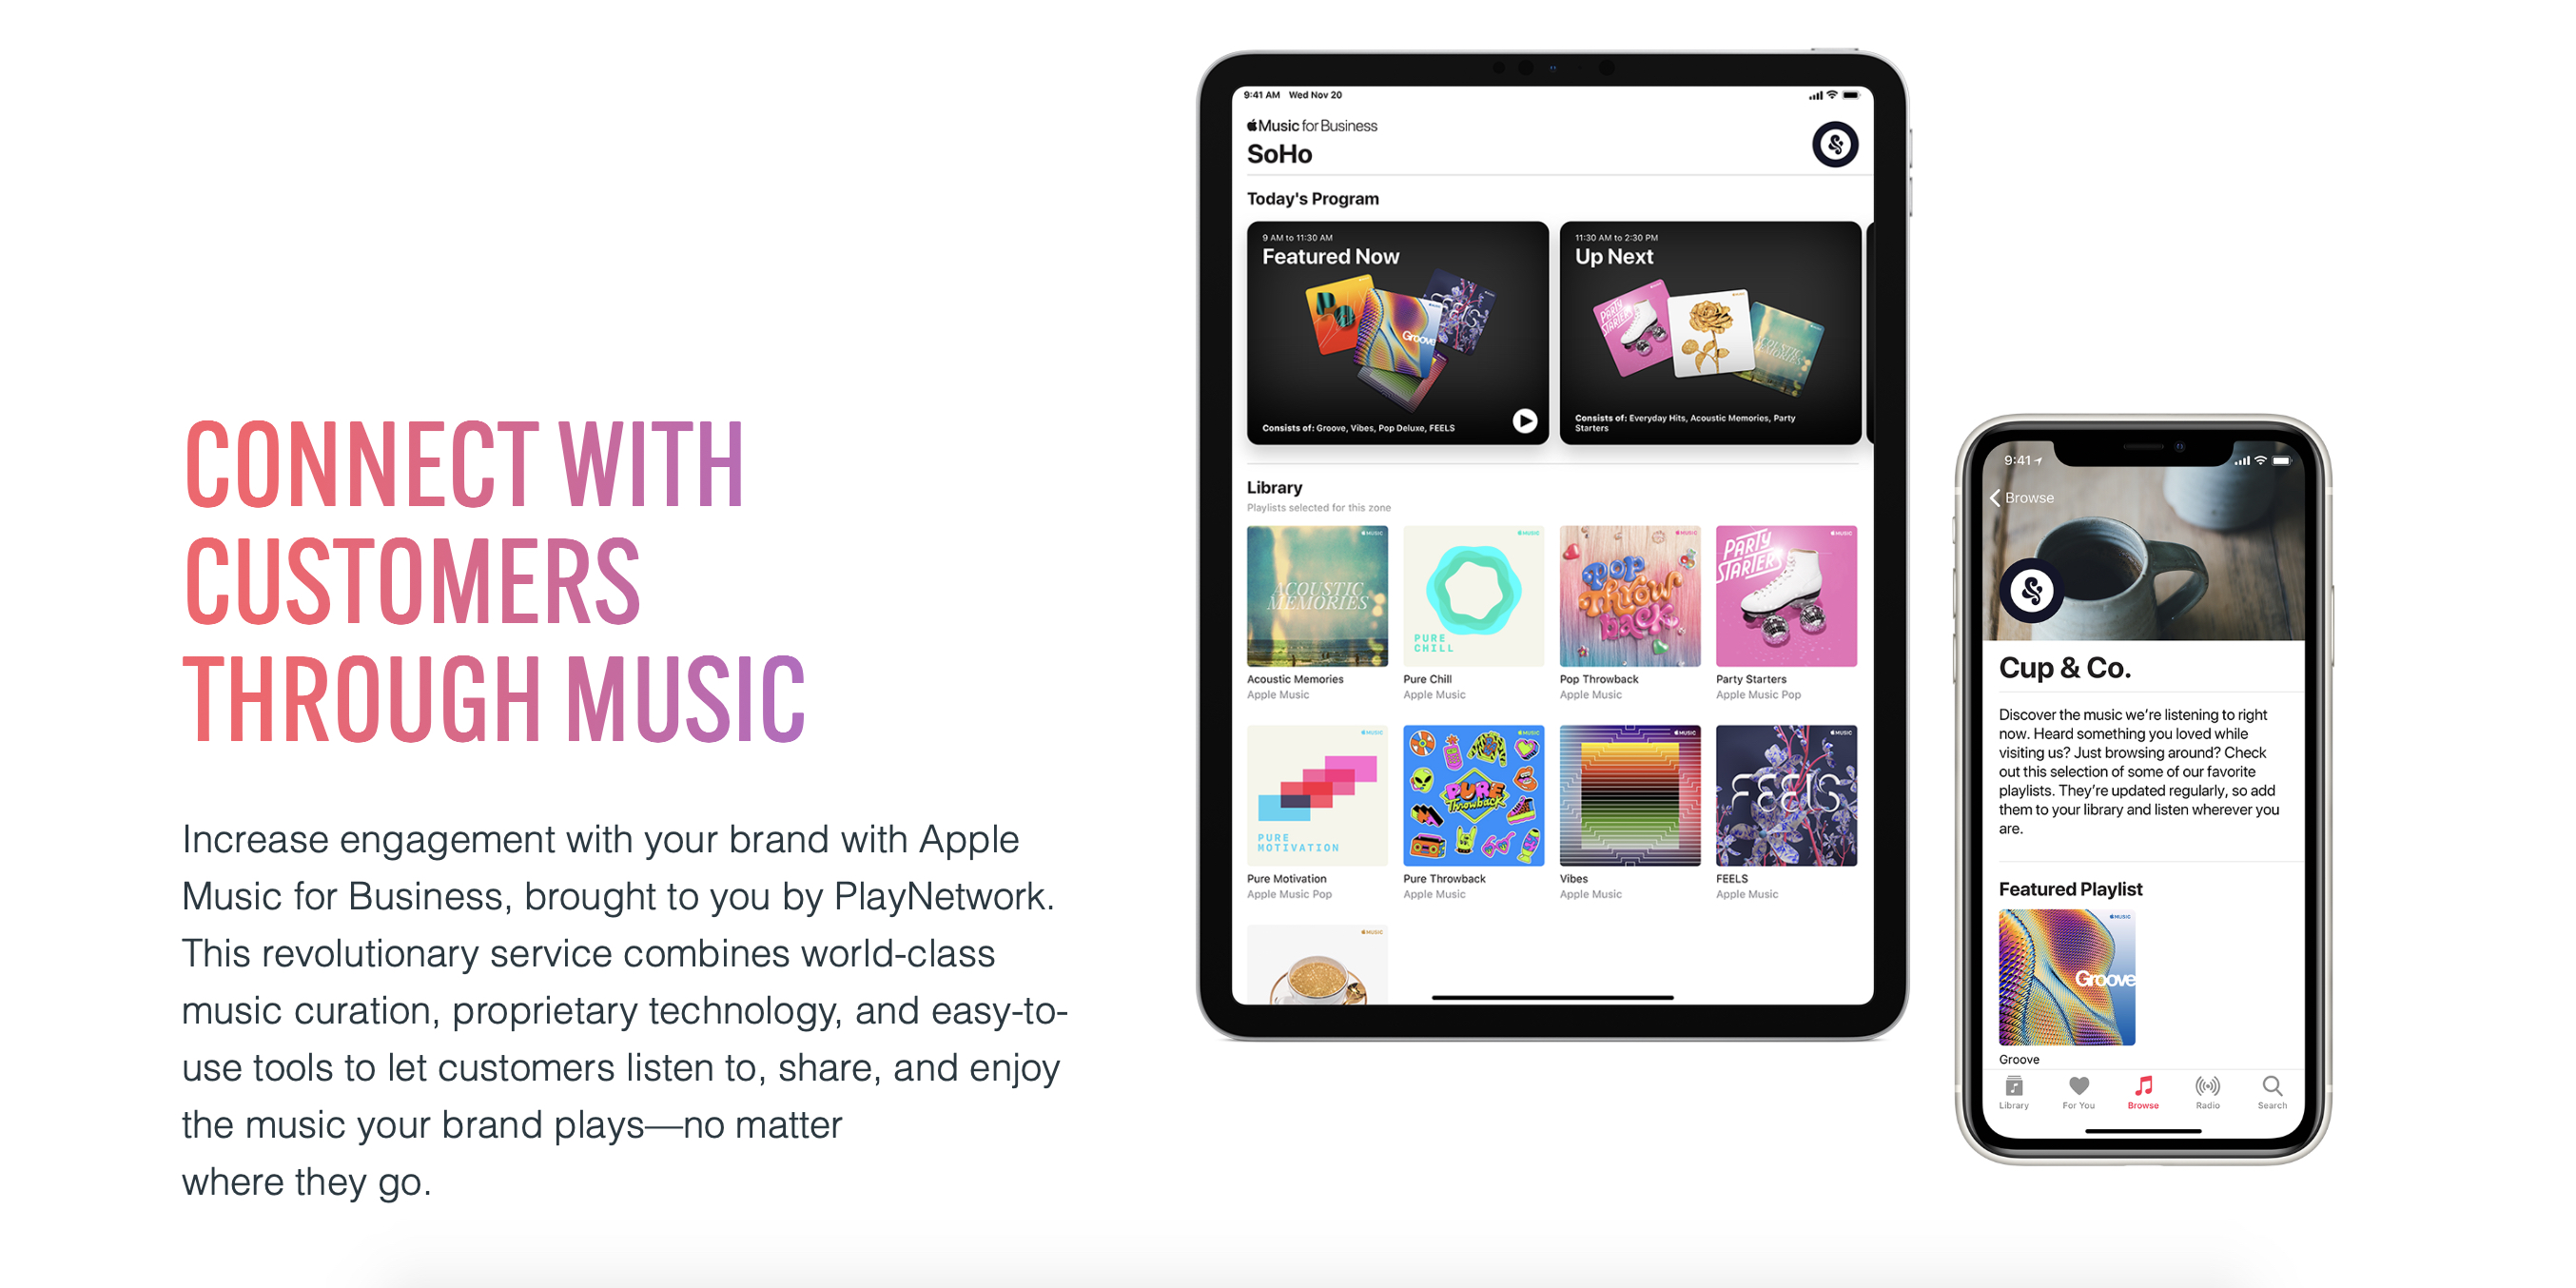 Apple launching 'Apple Music for Business' to provide music to retail stores - 9to5Mac